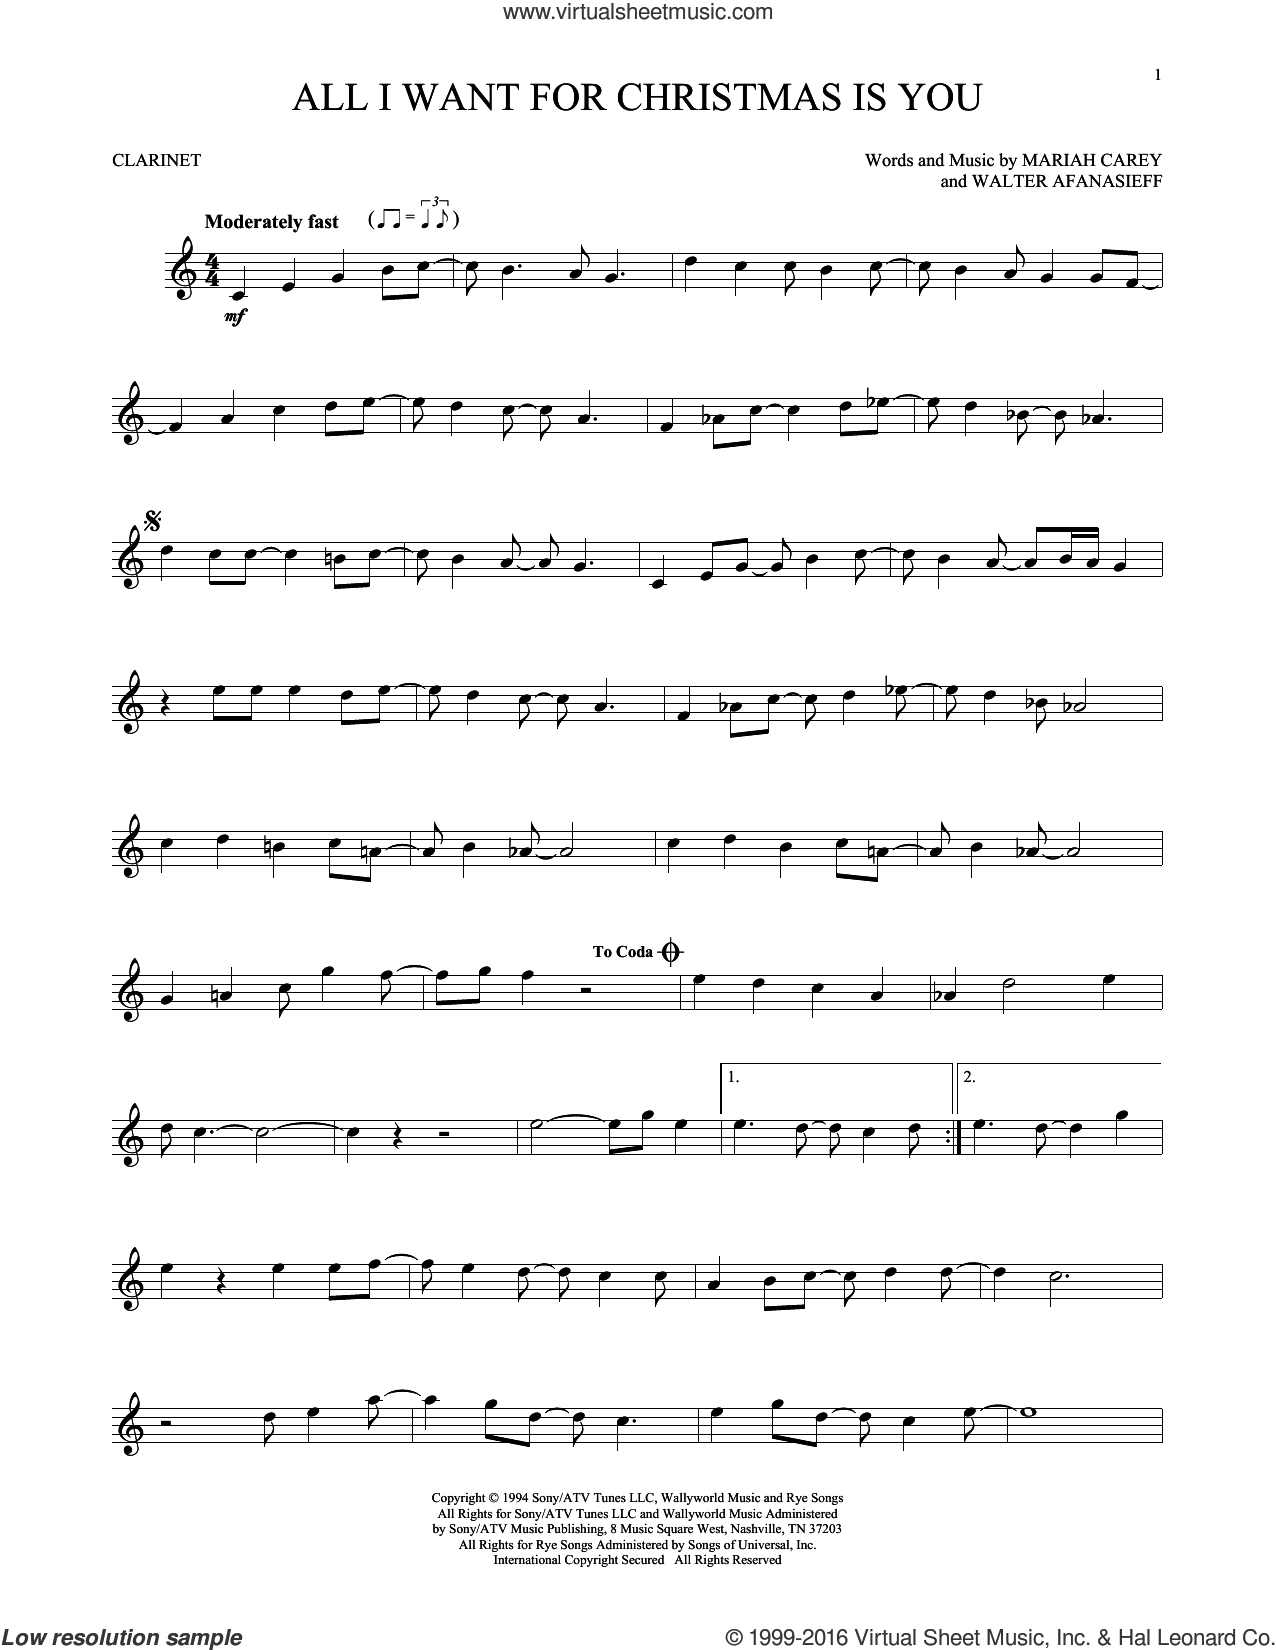 All I Want For Christmas Is You sheet music for clarinet solo by Mariah Carey and Walter Afanasieff, intermediate. Score Image Preview.